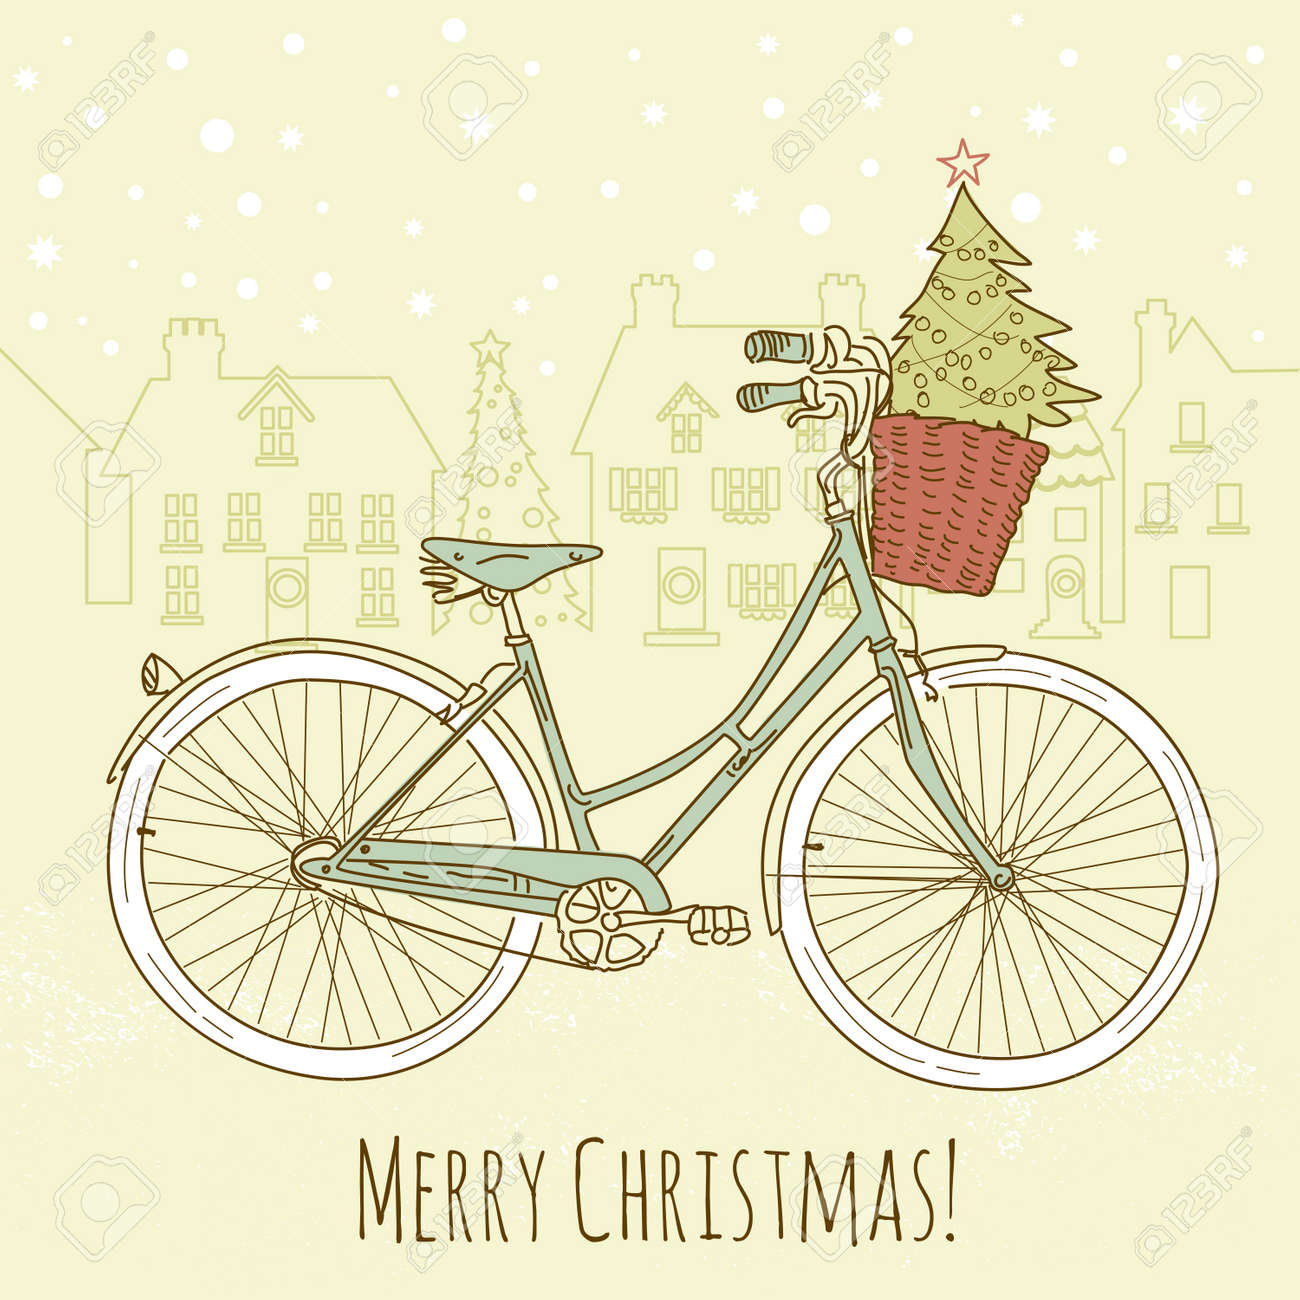 Riding a bike in style, Christmas postcard Stock Vector - 16681176